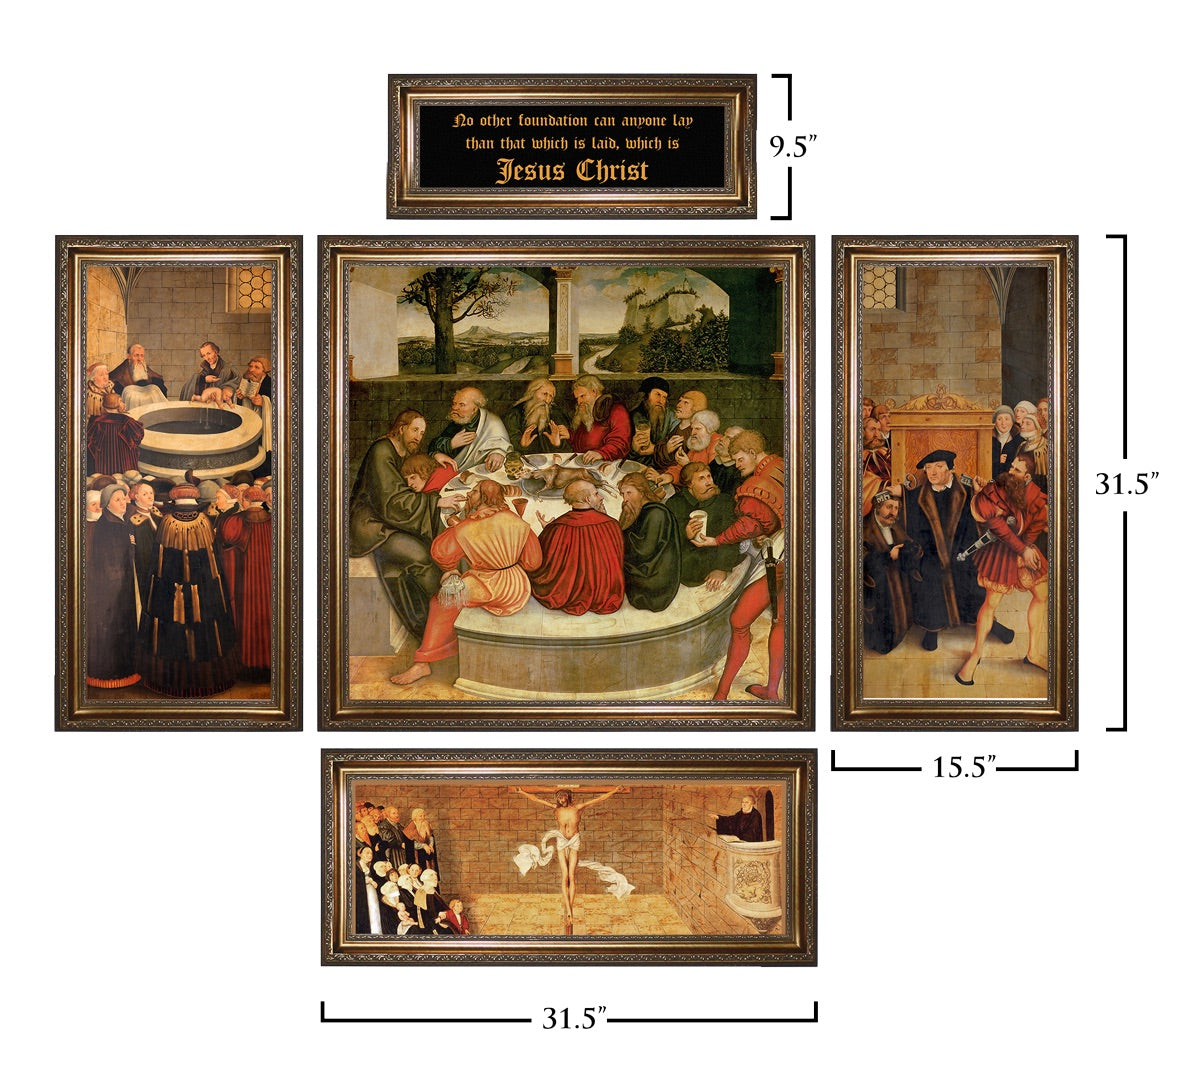 Lutheran Reformation Altarpiece Giclee - Ornate Gold Solid Wood Frame Collection